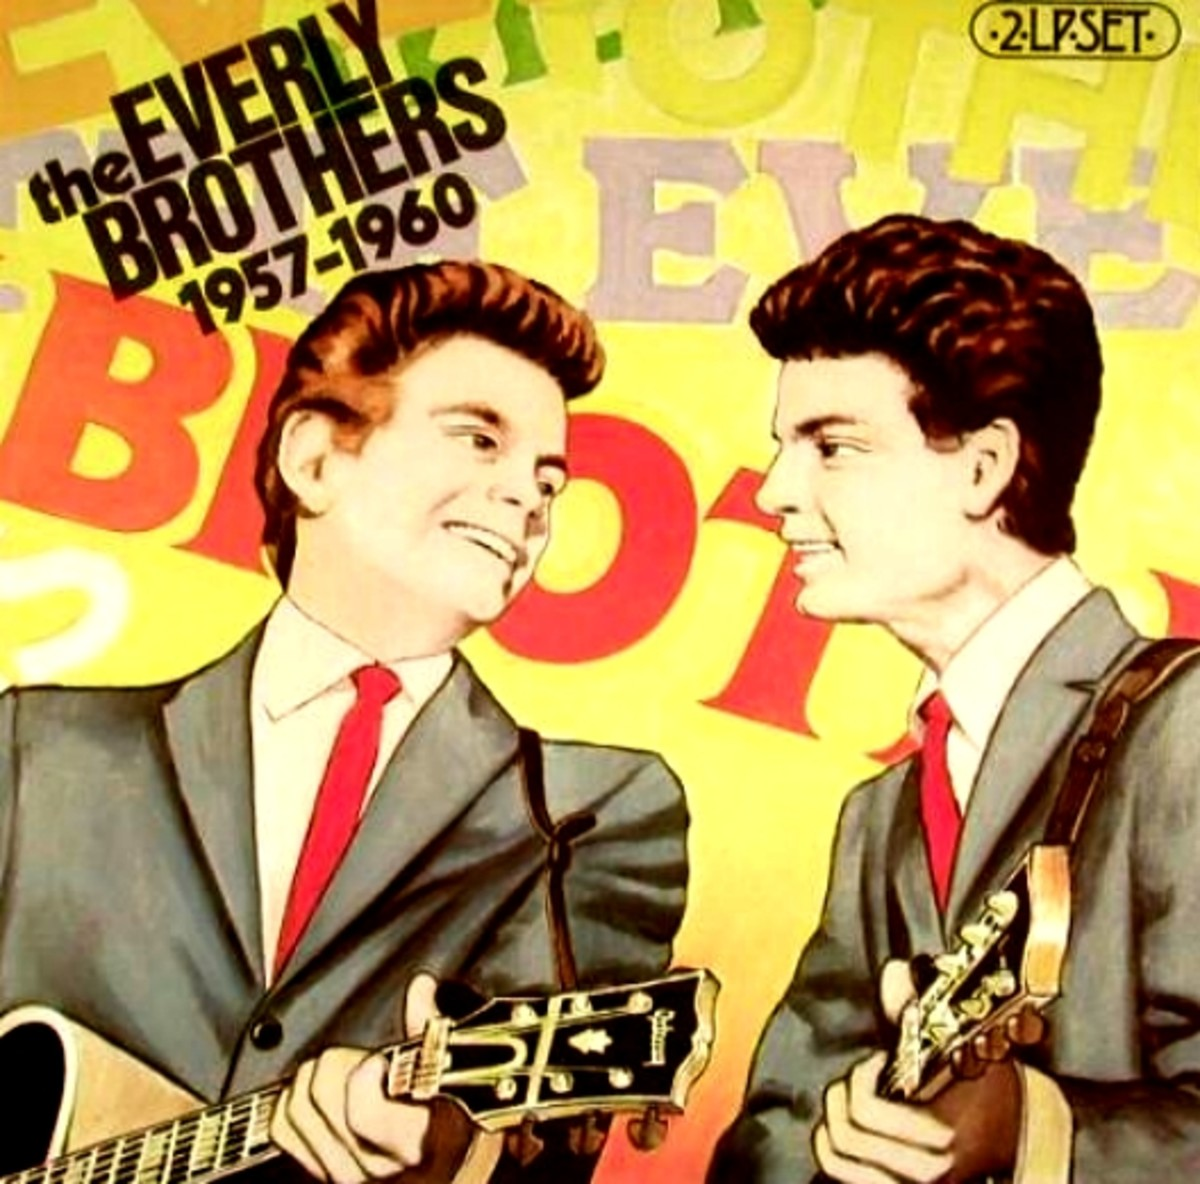 Everly Brothers 1957-60(521X)